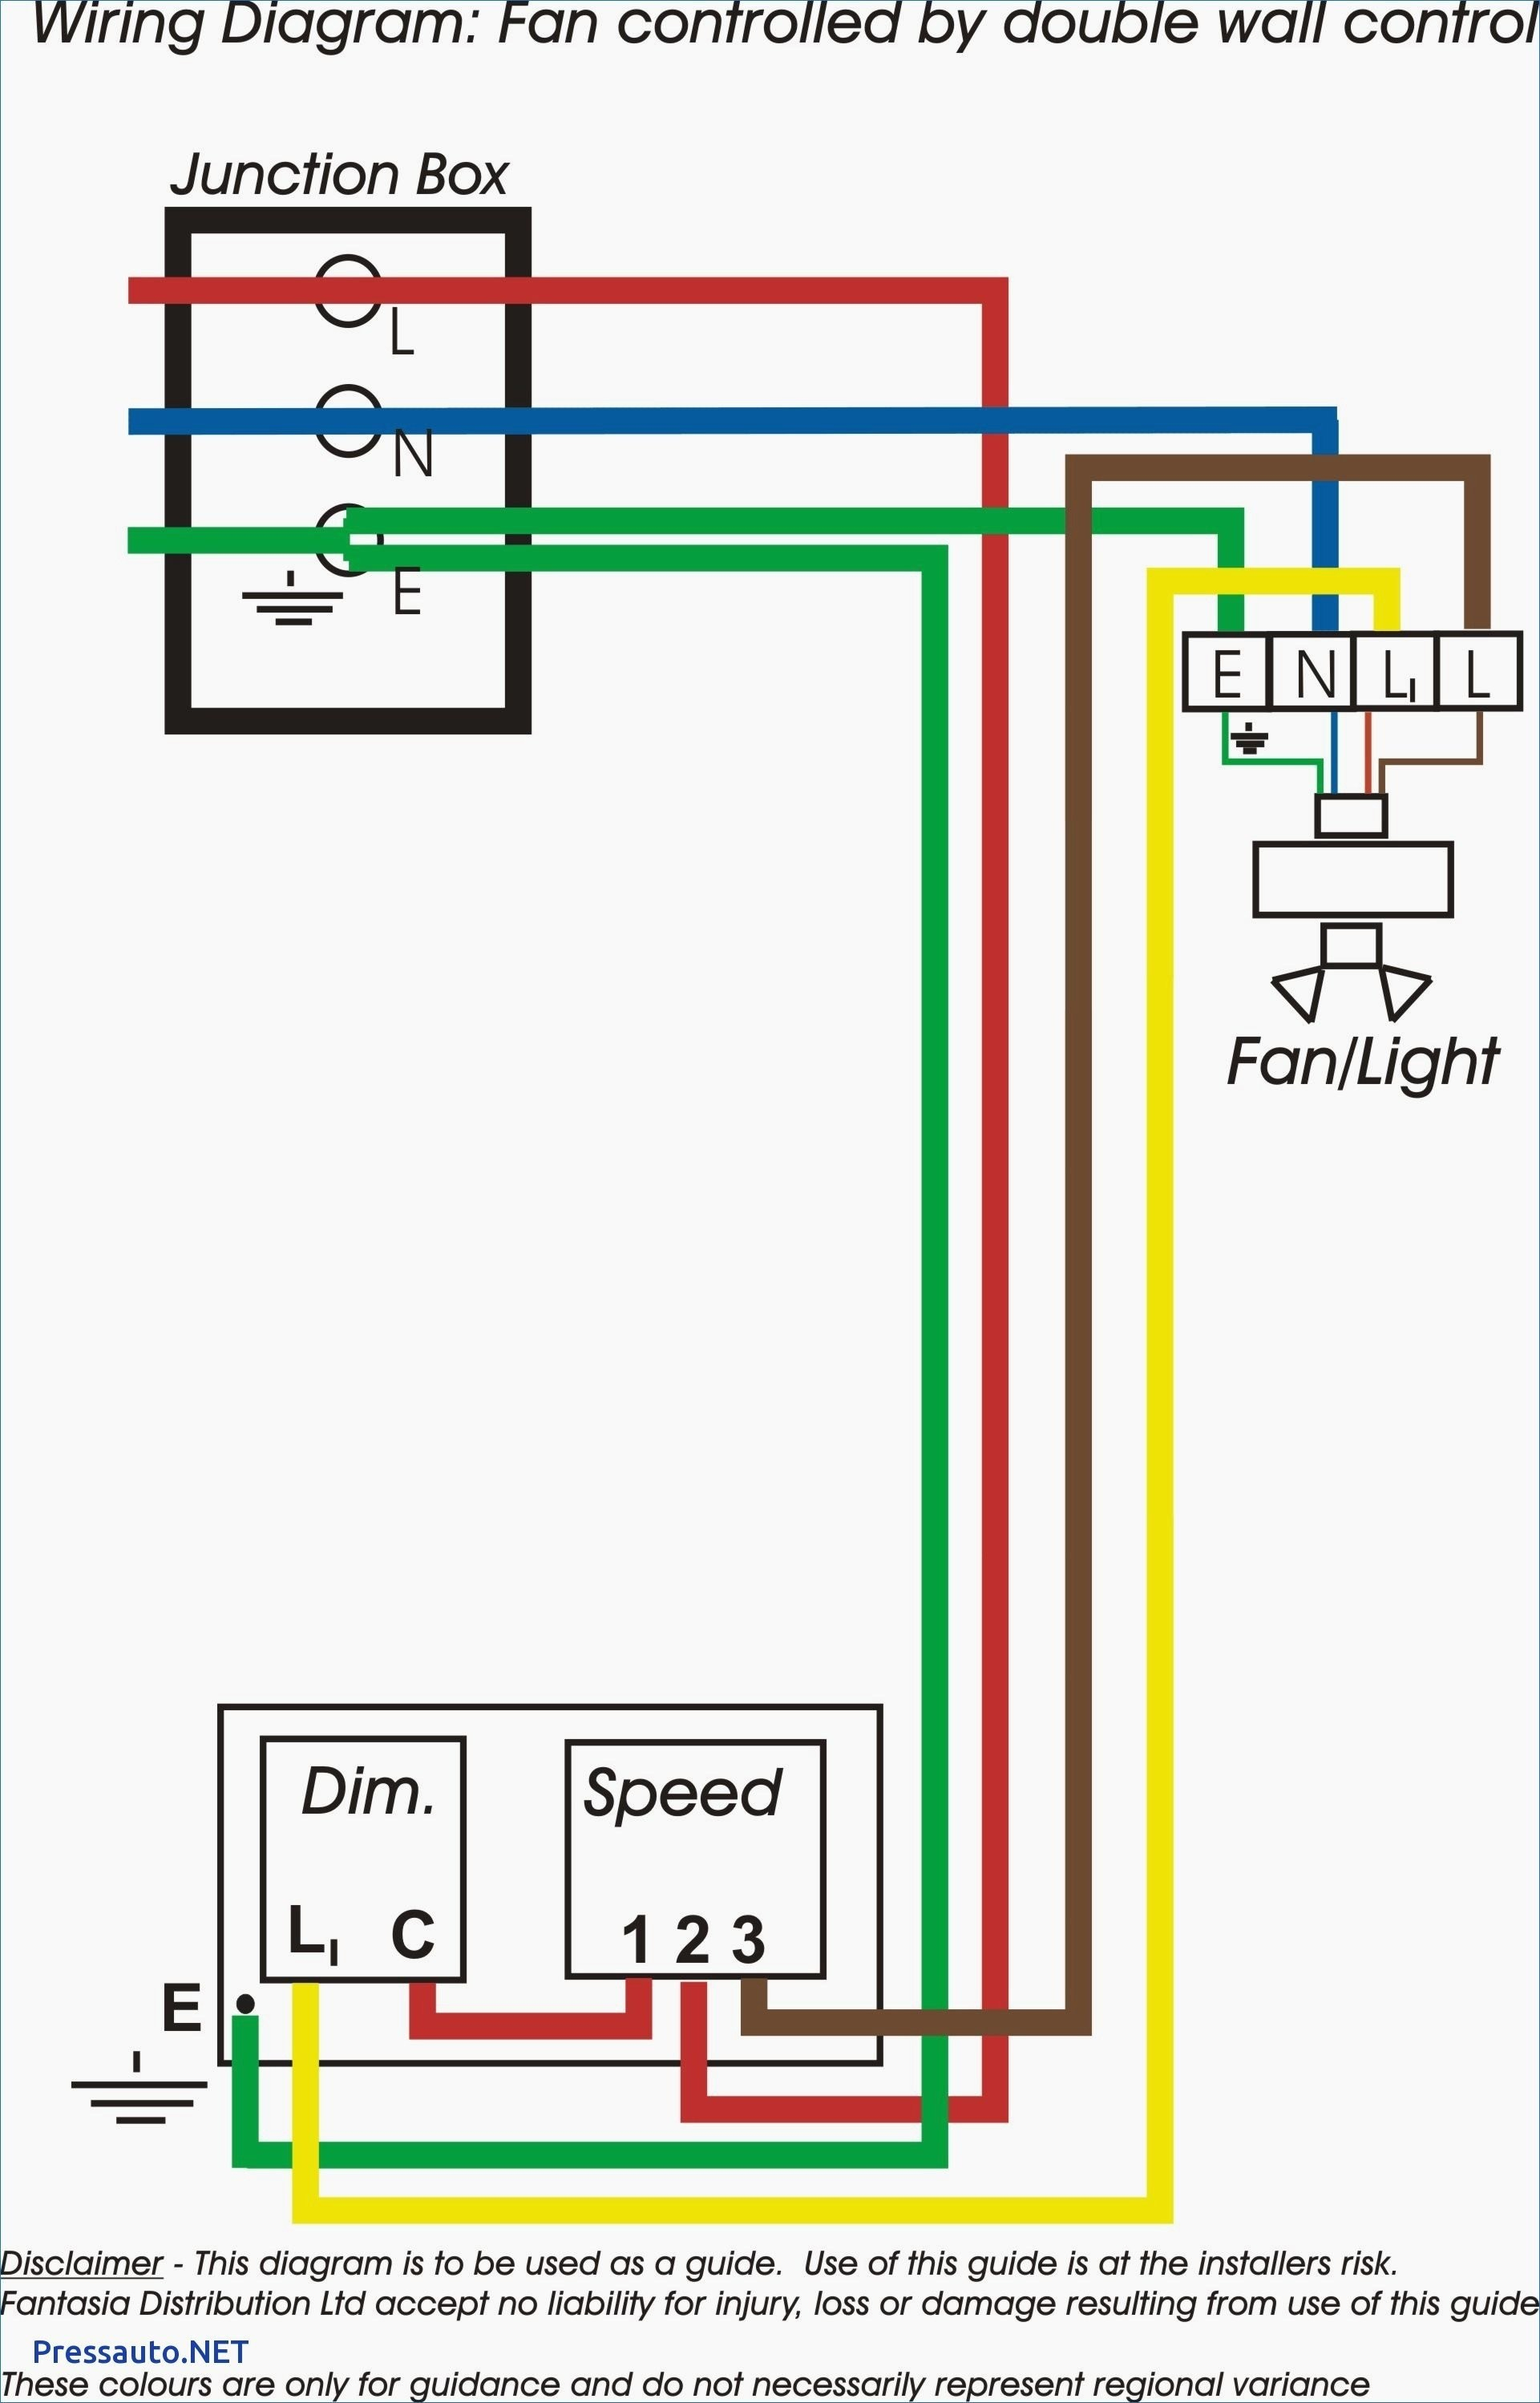 2 Way Light Switch Wiring Instructions Unique Diagram For Two - 2 Way Light Switch Wiring Diagram